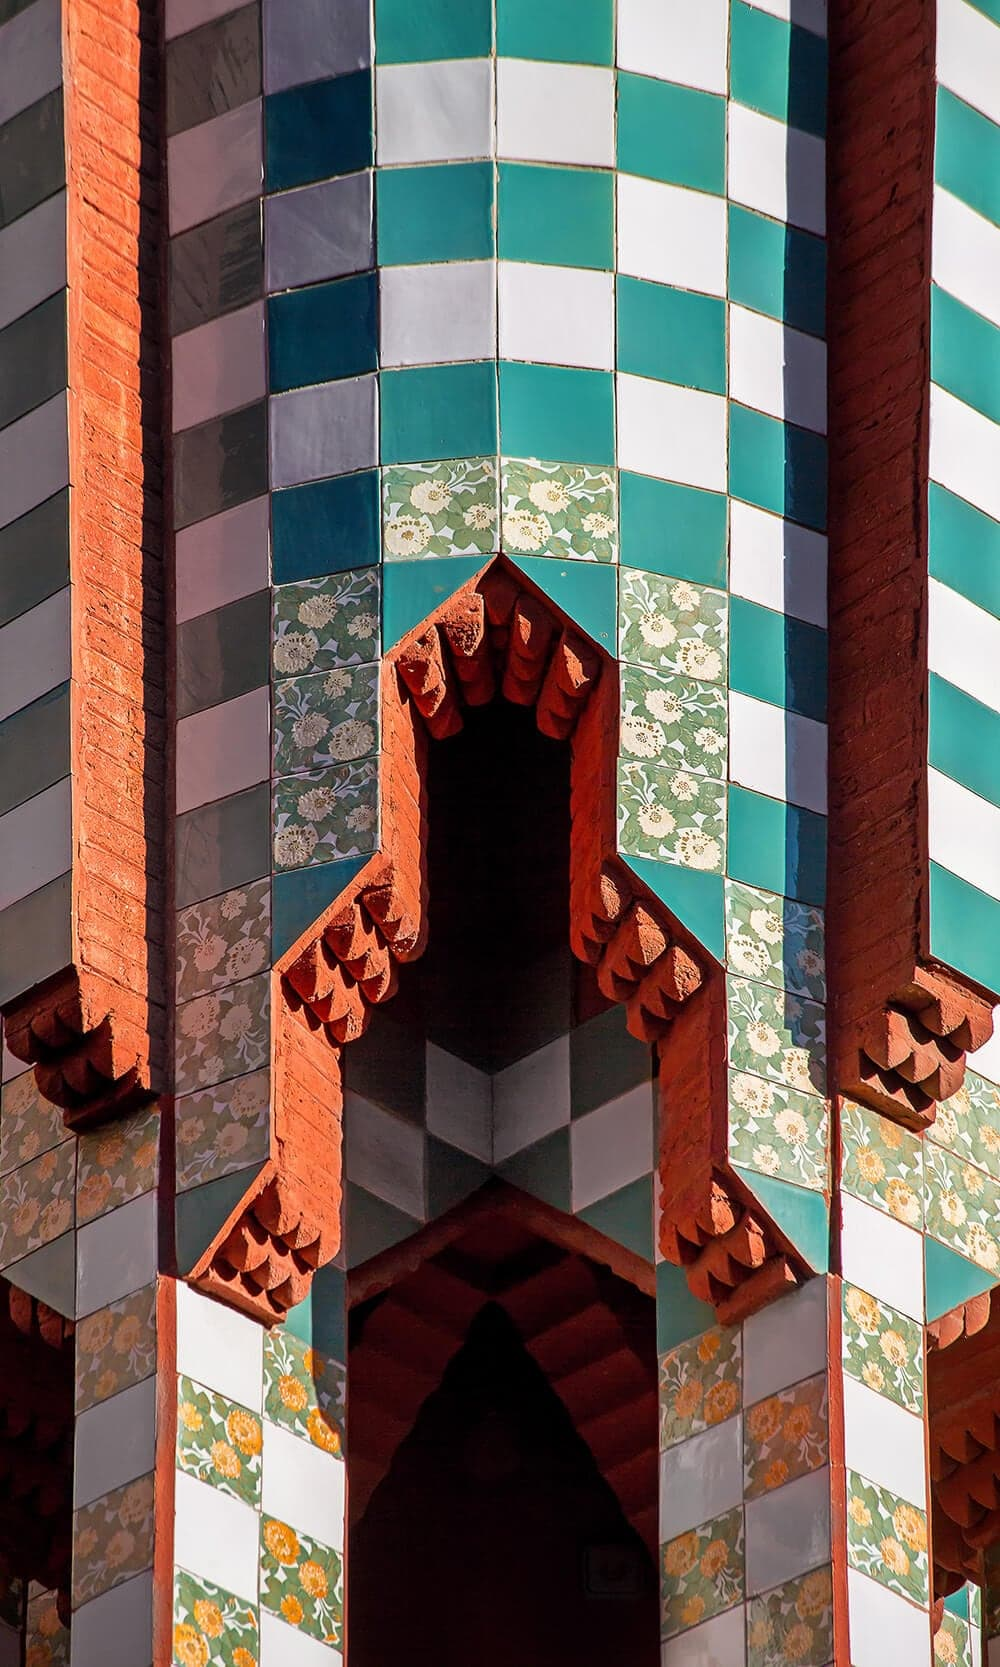 casa vicens opens to the public fy 7 - First Built House by Antoni Gaudí Opens to the Public as a Museum